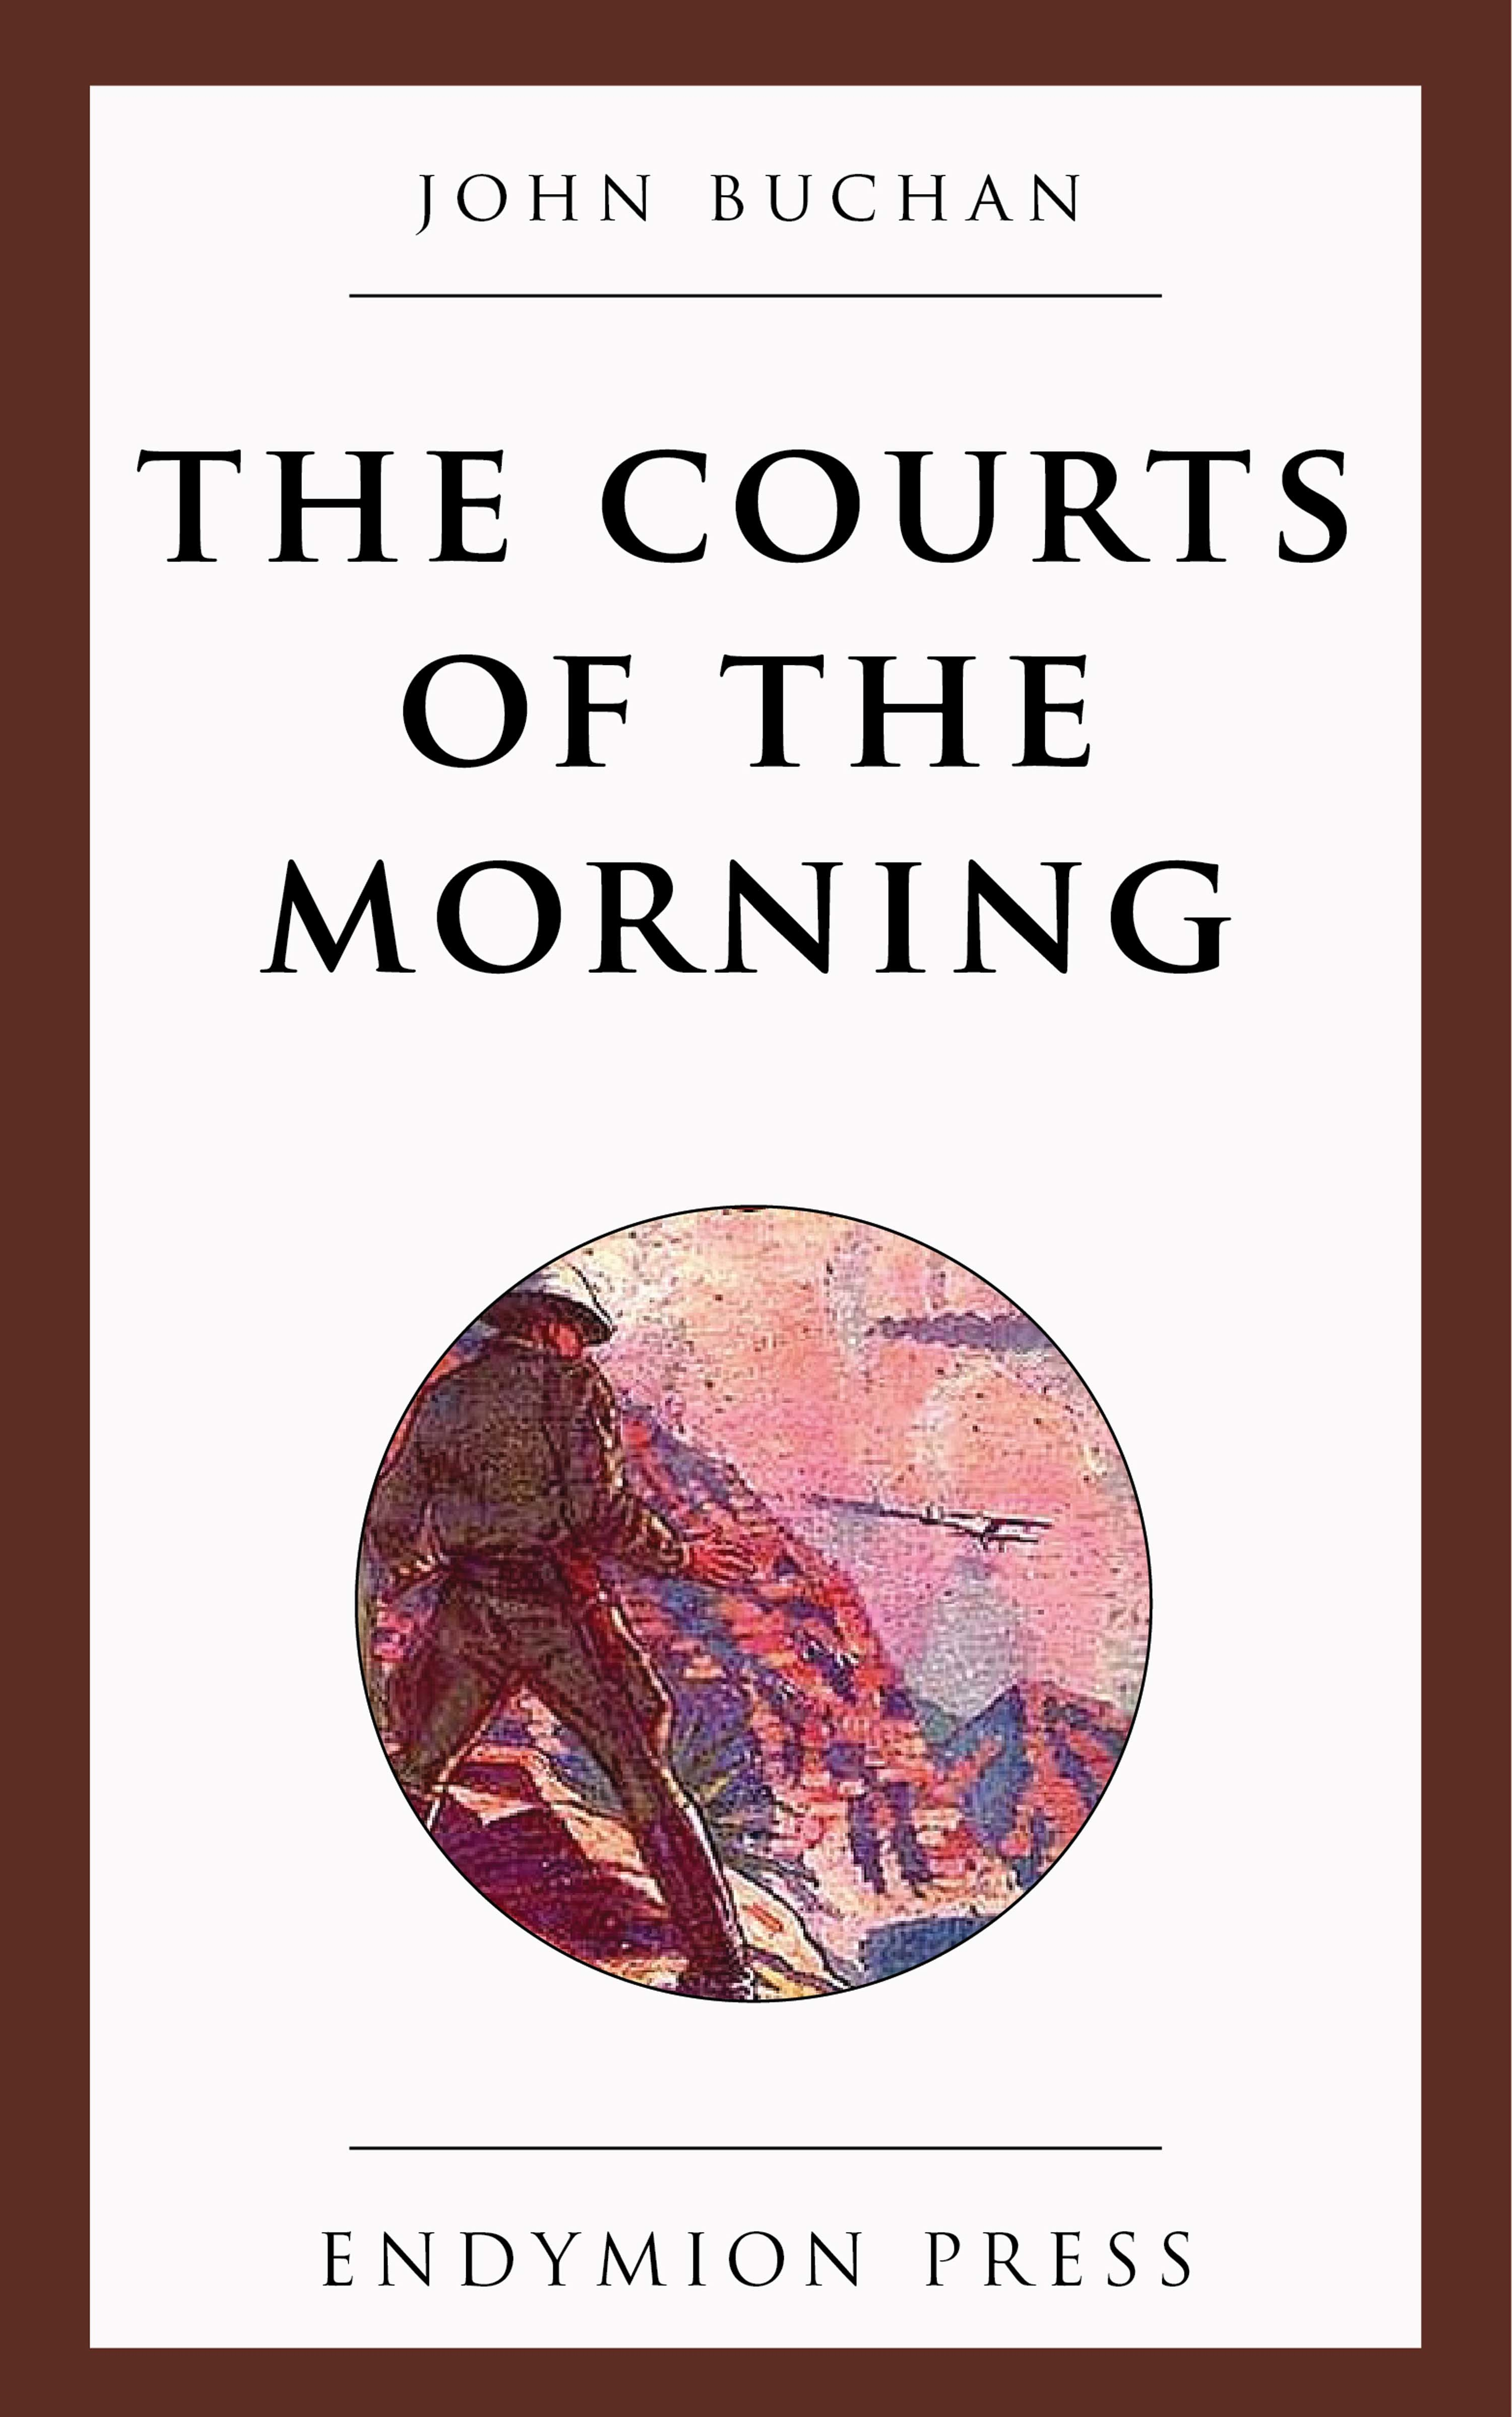 Buchan John The Courts of the Morning